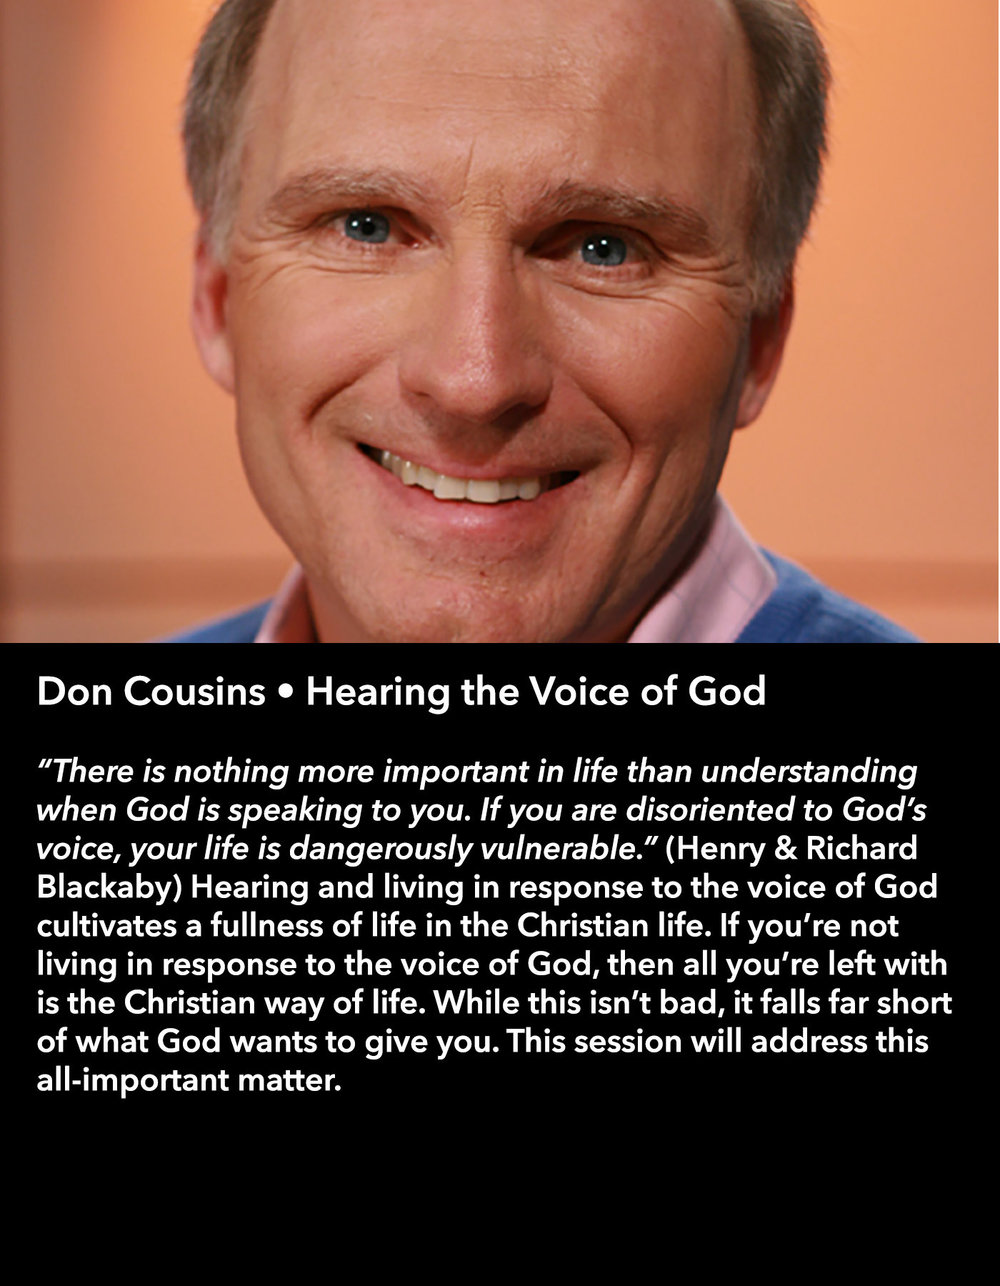 Don Cousins • Hearing the Voice of God • Friday Morning, March 17 • 10:30 – 11:45 am